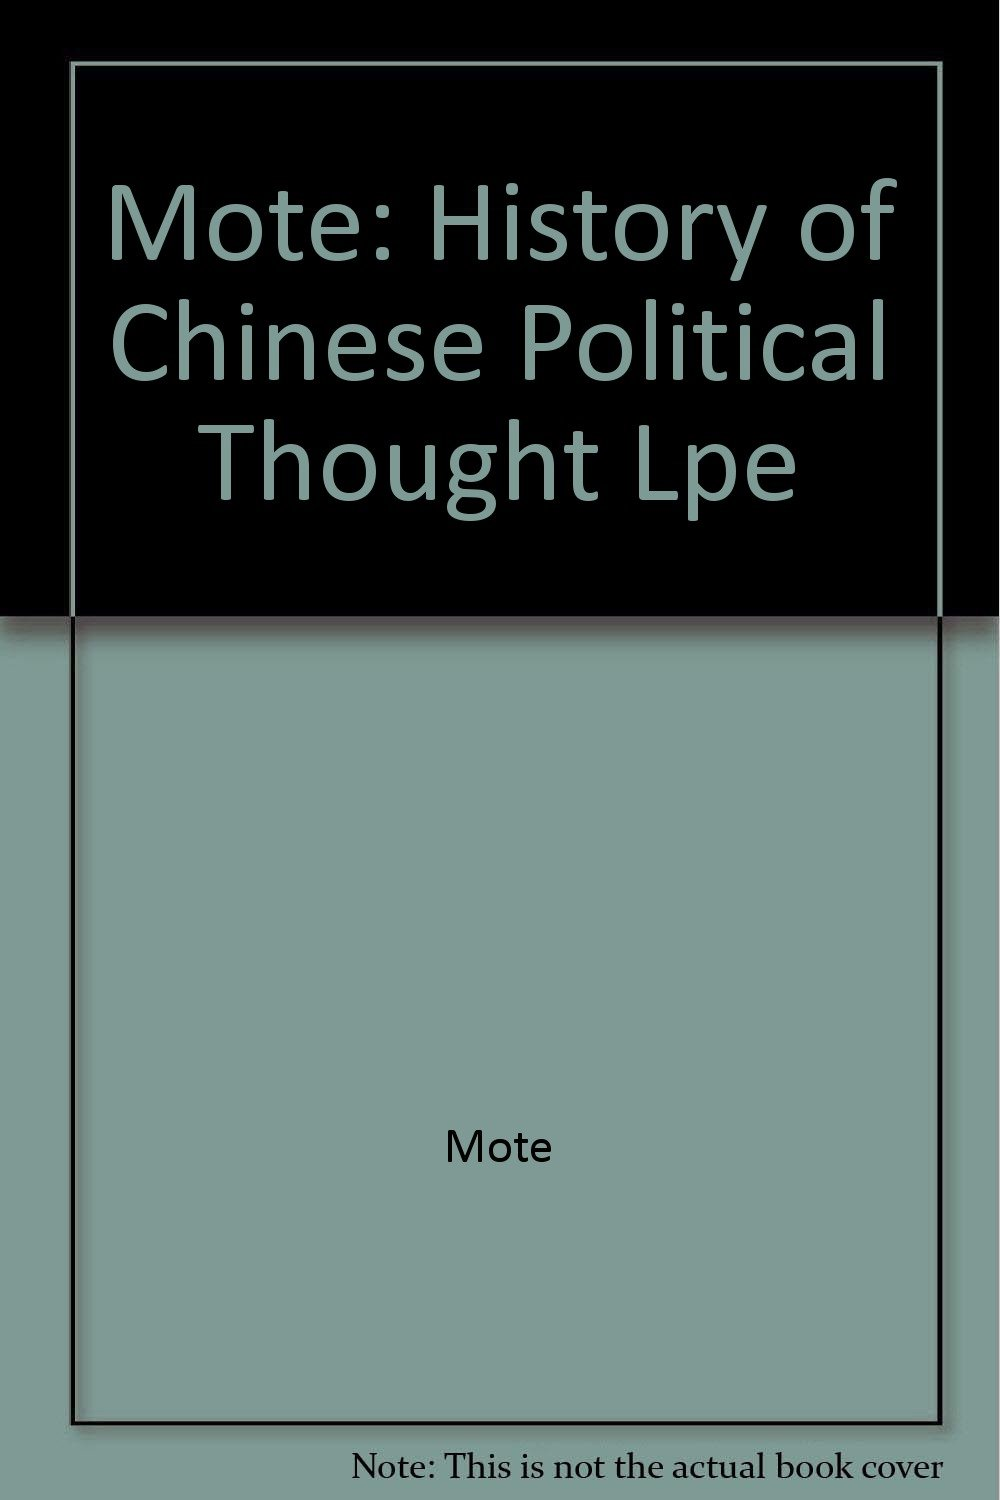 A History of Chinese Political Thought, Volume One: From the Beginnings to the Sixth Century A.D., Kung-chuan Hsiao